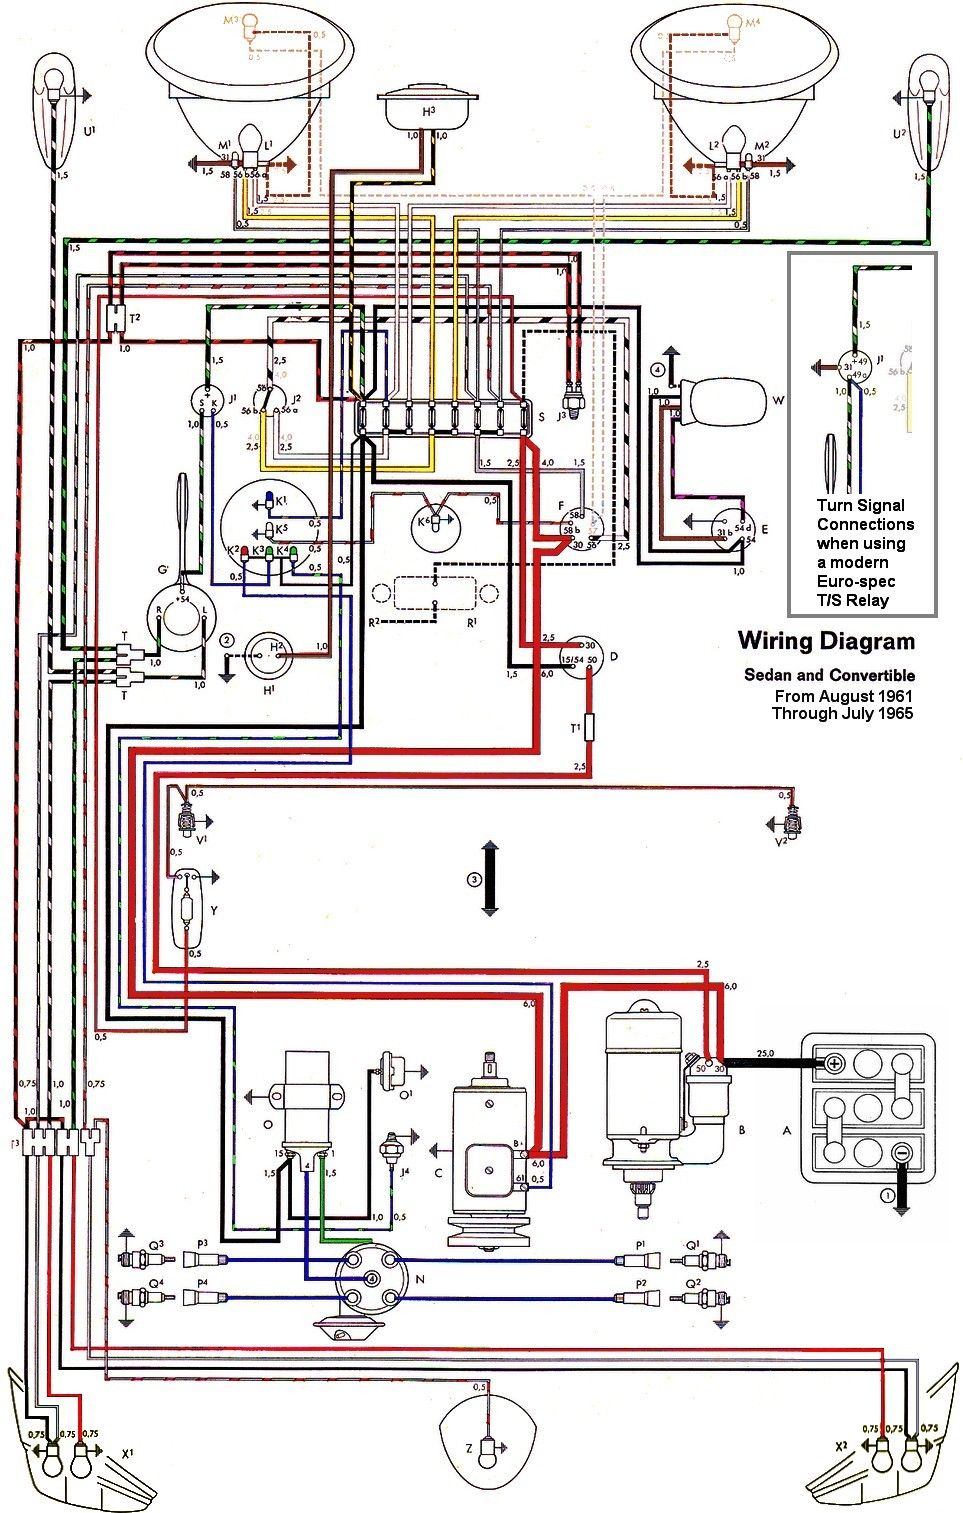 Wiring diagram VW beetle sedan and convertible 1961-1965 | VW ...